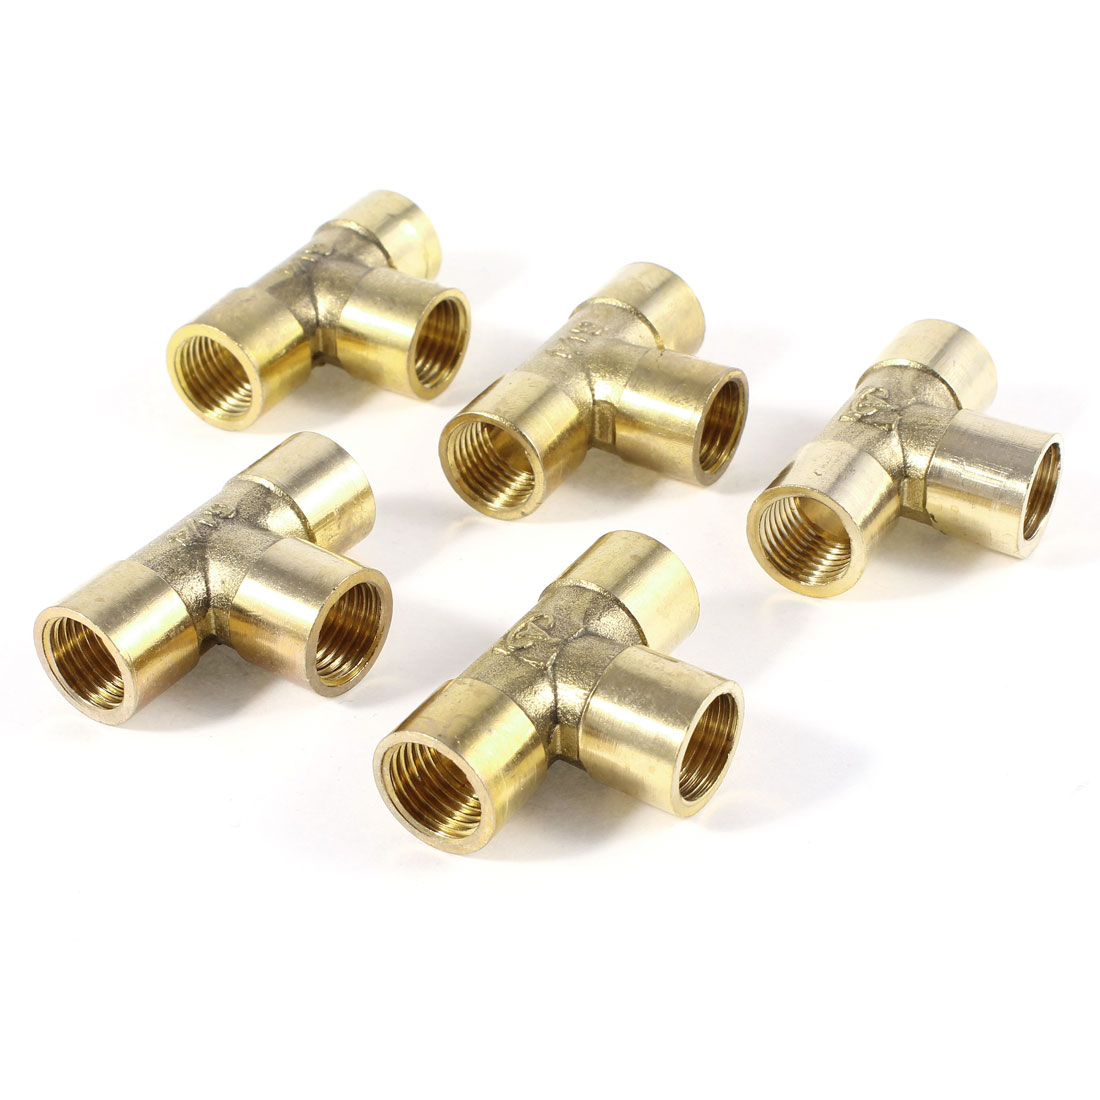 "5Pcs Brass Tee Shaped 3 Way 1/4""PT to 1/4""PT Female Pipe Fitting Coupling"